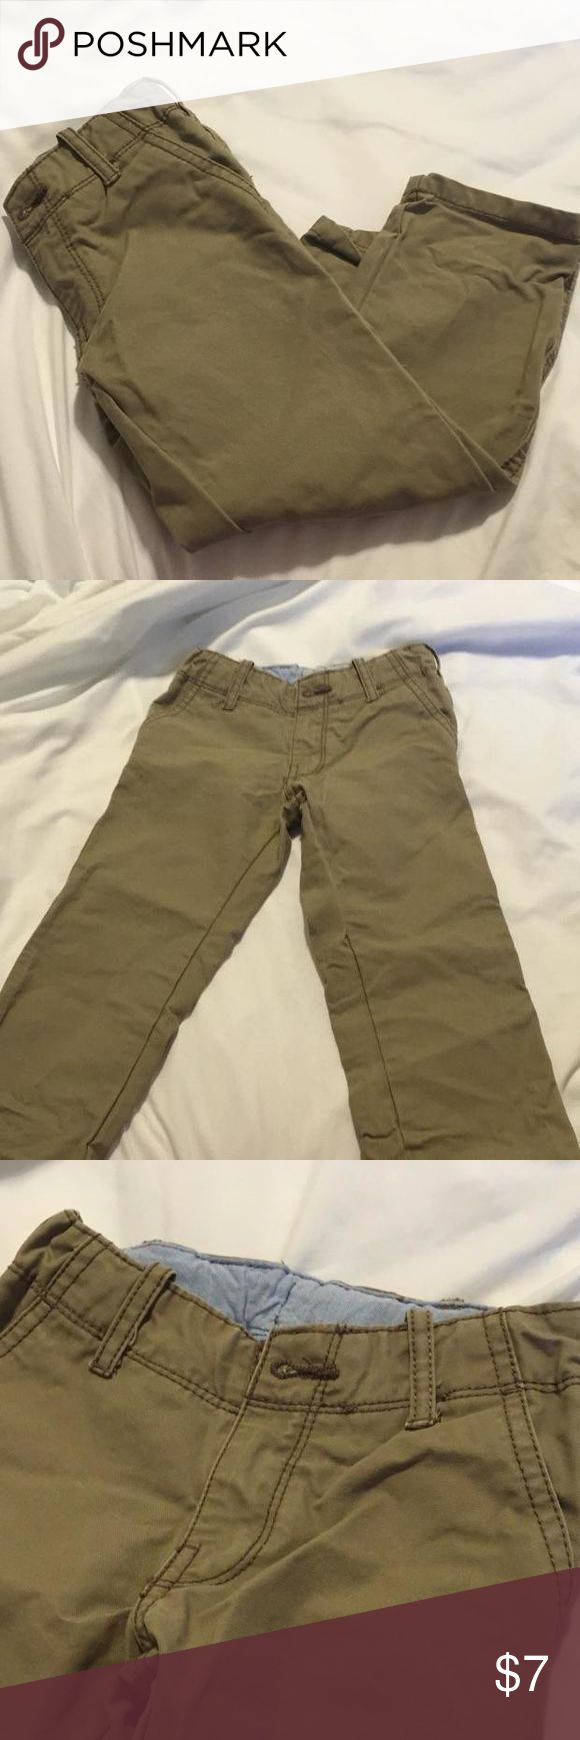 Tan jeans Tan jeans like new, hardly used. Has elastic band for skinny kids. Carters Shirts & Tops